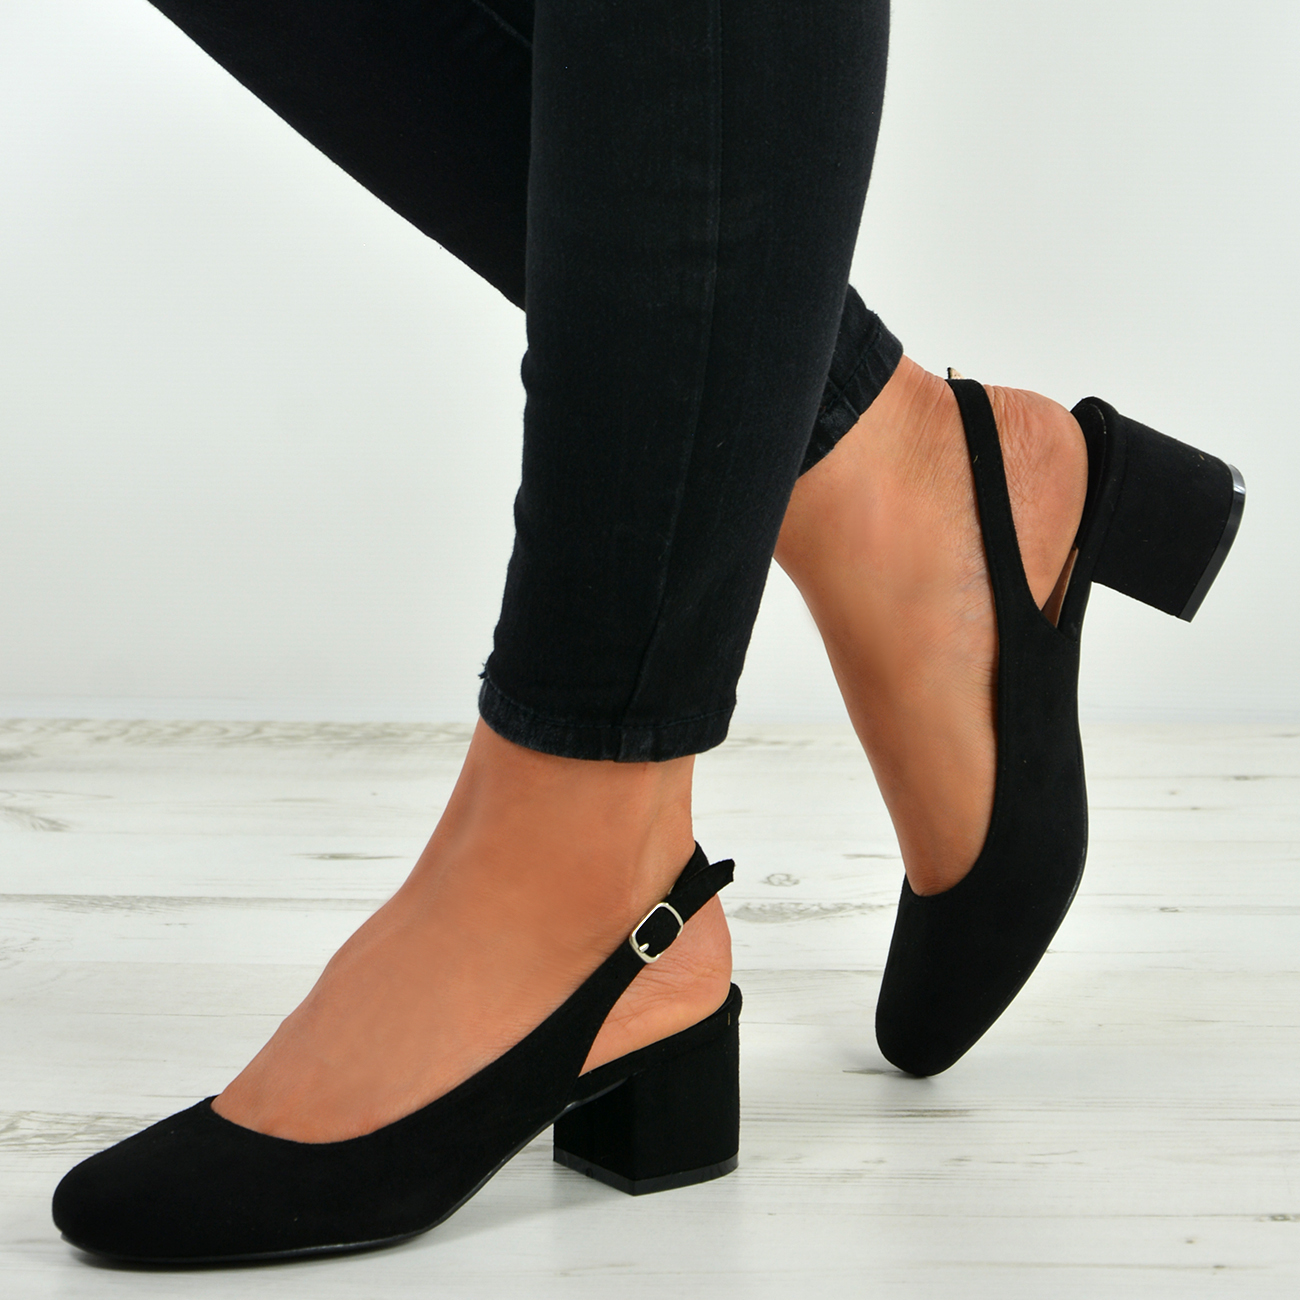 New-Womens-Low-Block-Heel-Pumps-Ladies-Sling-Back-Buckle-Shoes-Size-Uk-3-8